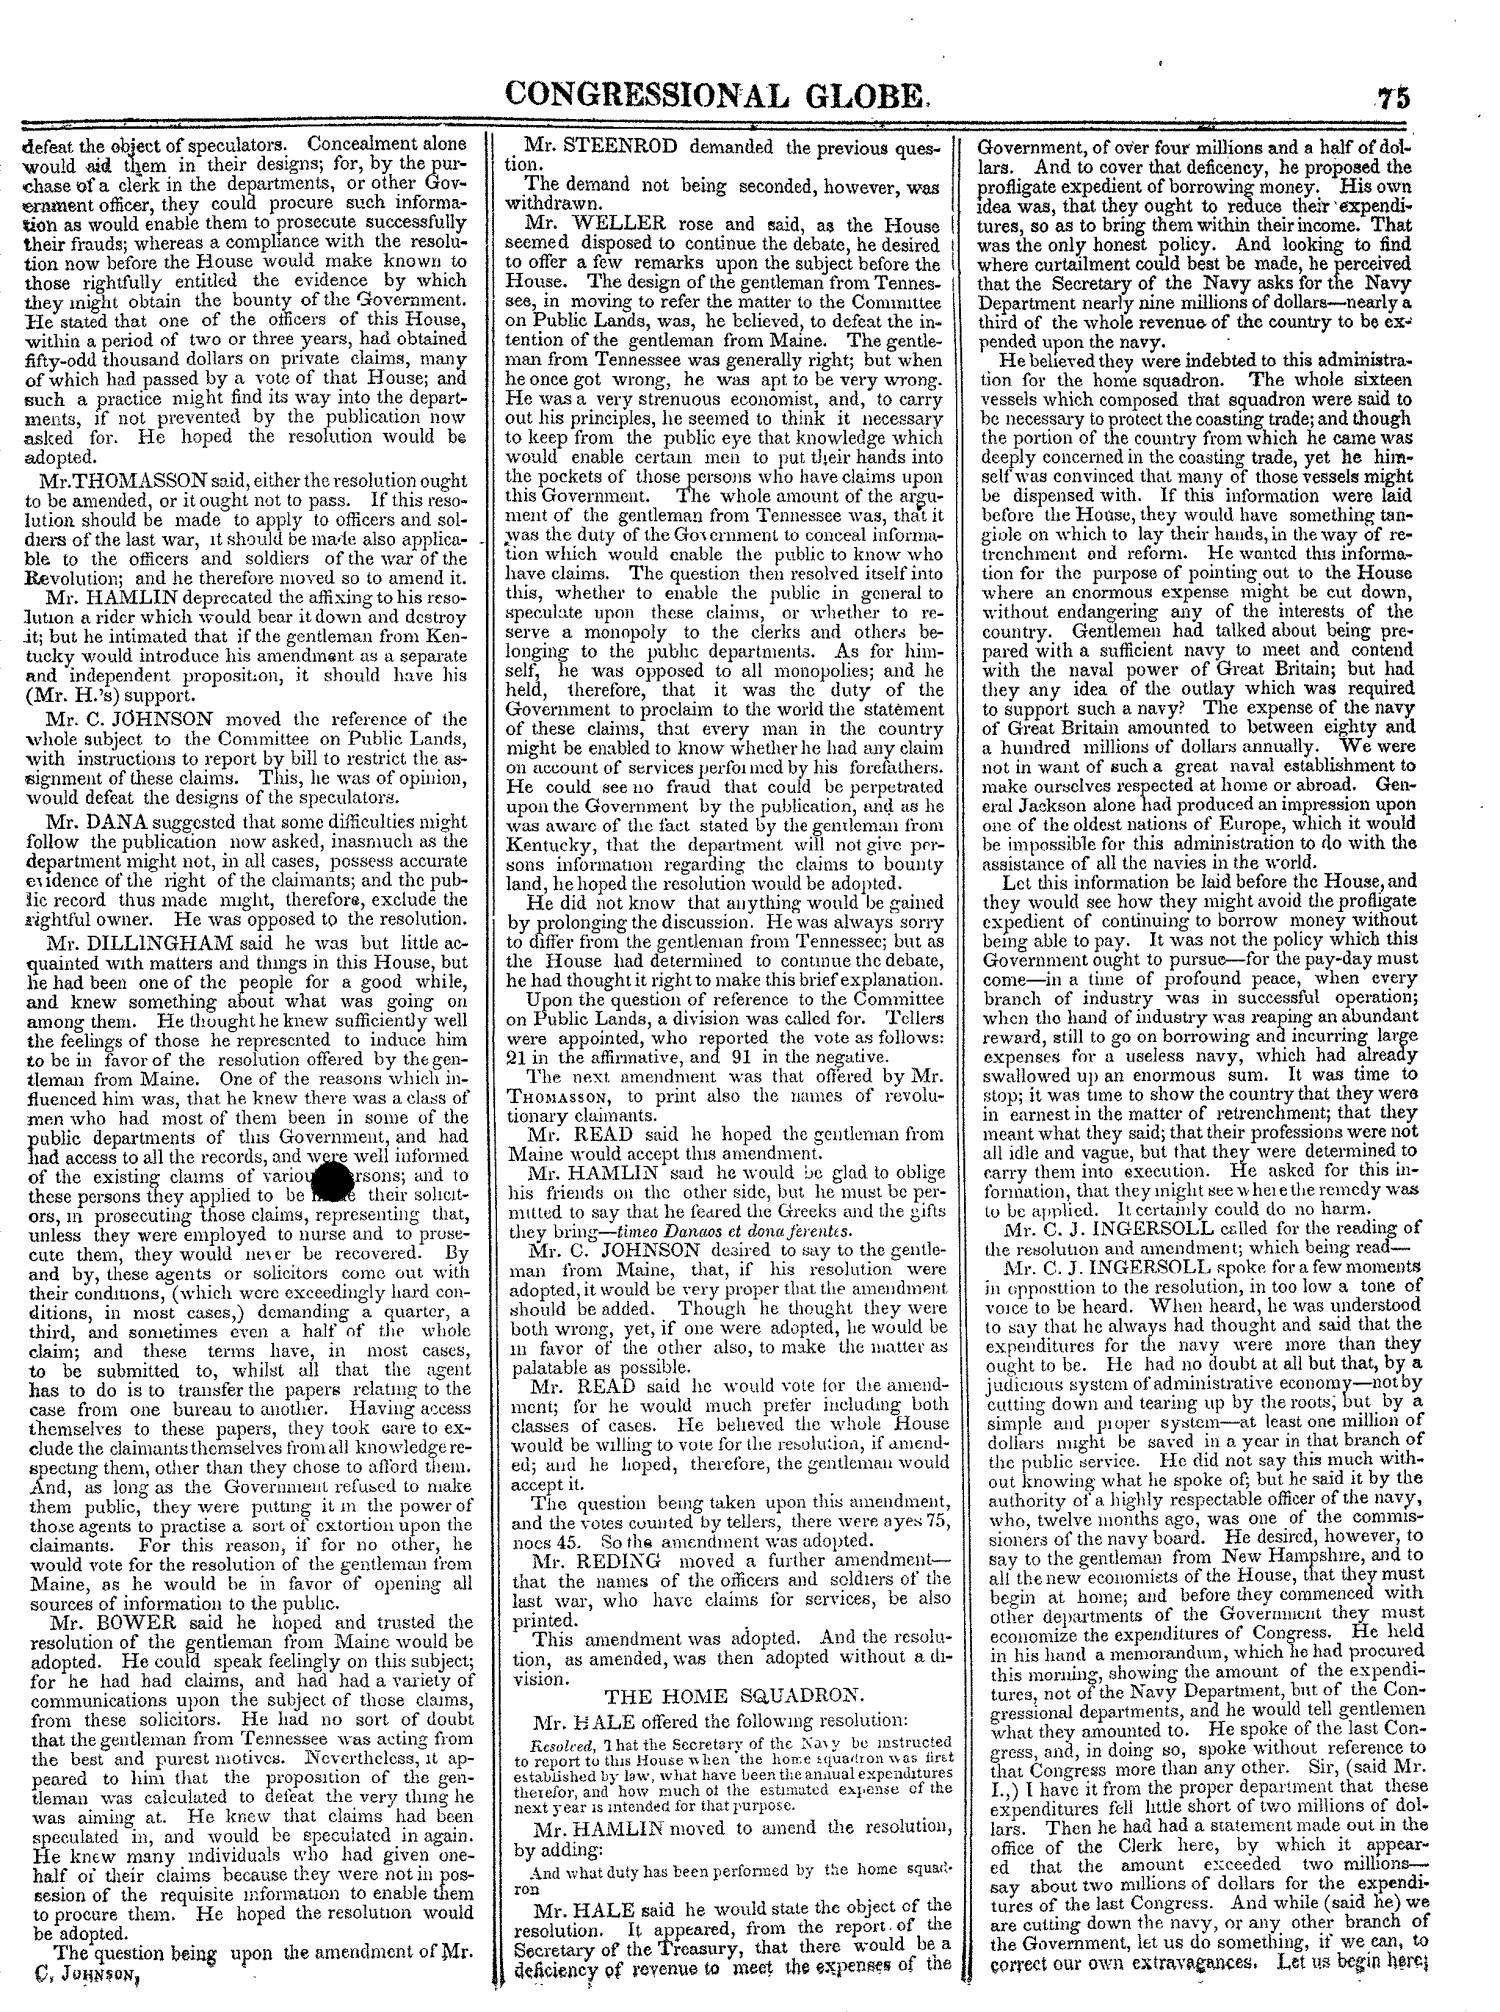 The Congressional Globe, Volume 13, Part 1: Twenty-Eighth Congress, First Session                                                                                                      75